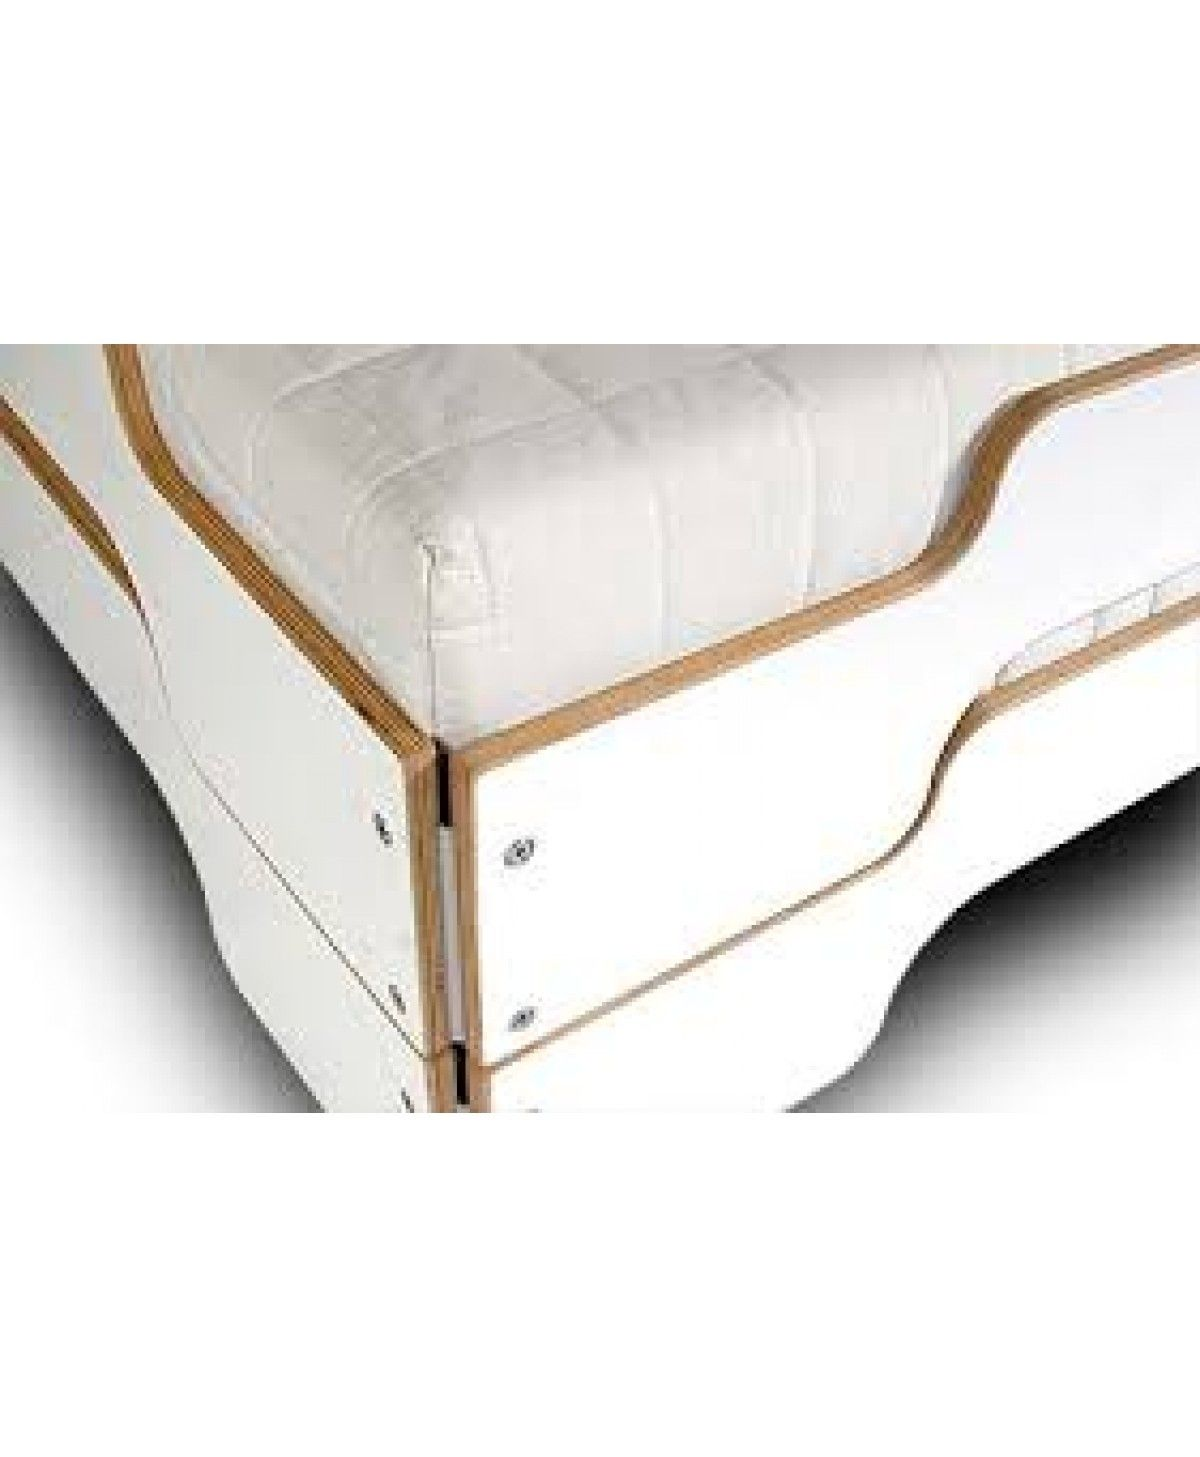 Rolf Heide Stapelliege Stapelbaar Retro Design Bed Stapelliege By Rolf Heide Centro